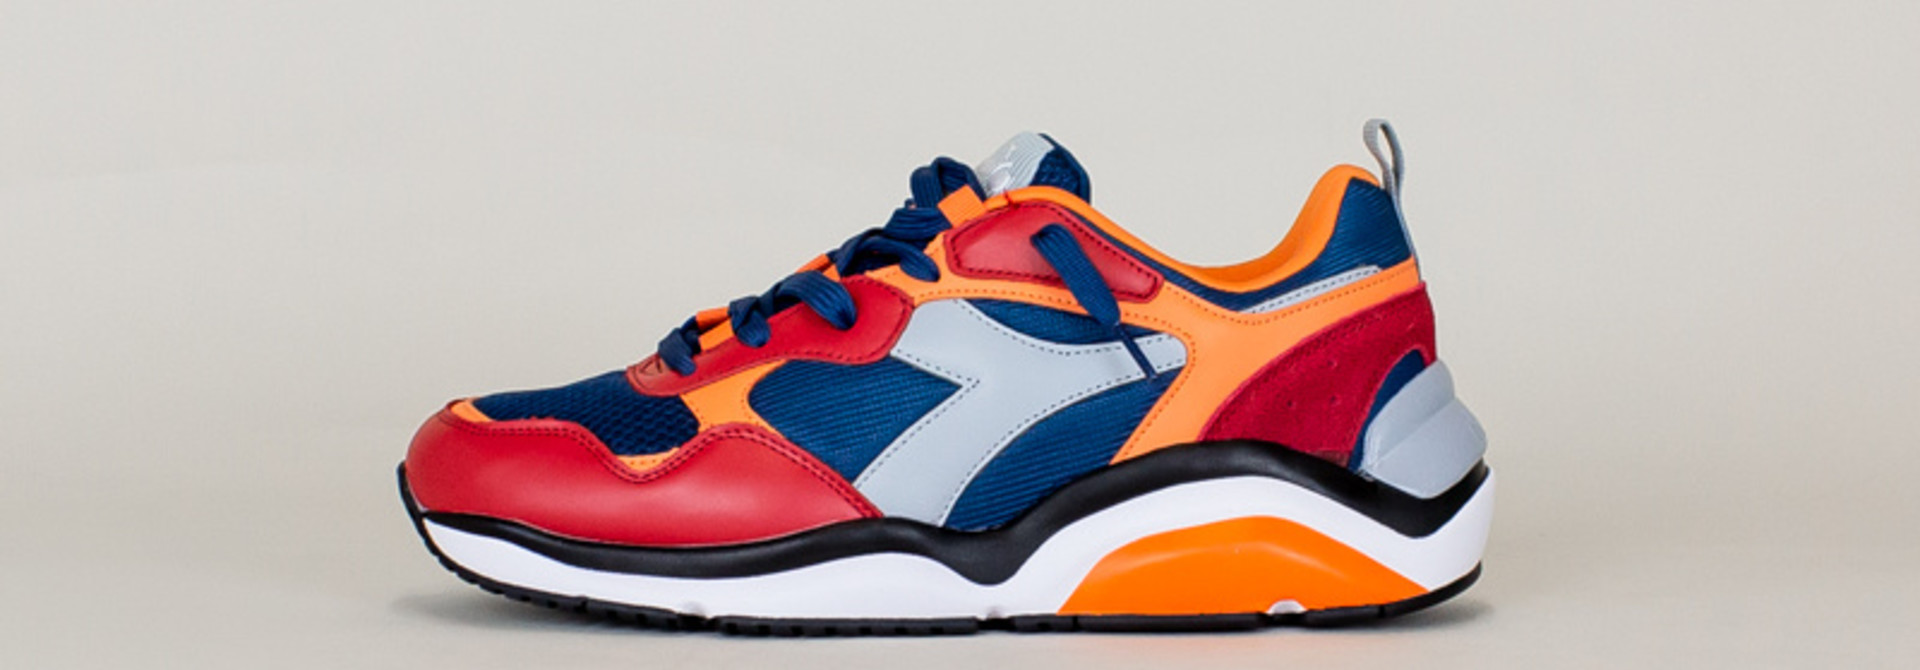 Diadora Whizz Run - Blue Bird/ Paradise